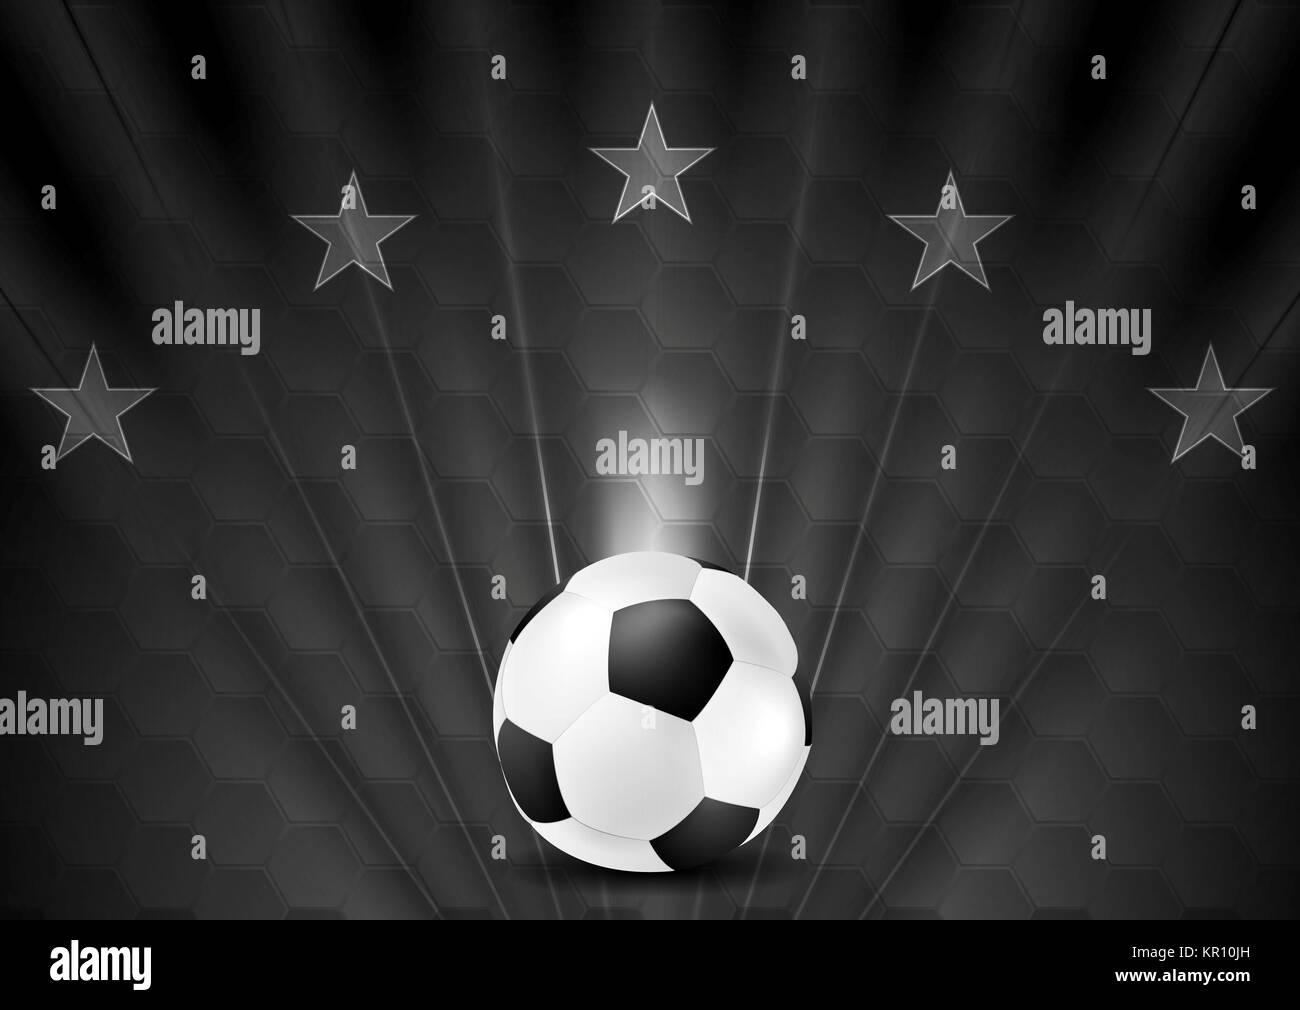 Black abstract soccer football background with stars stock image